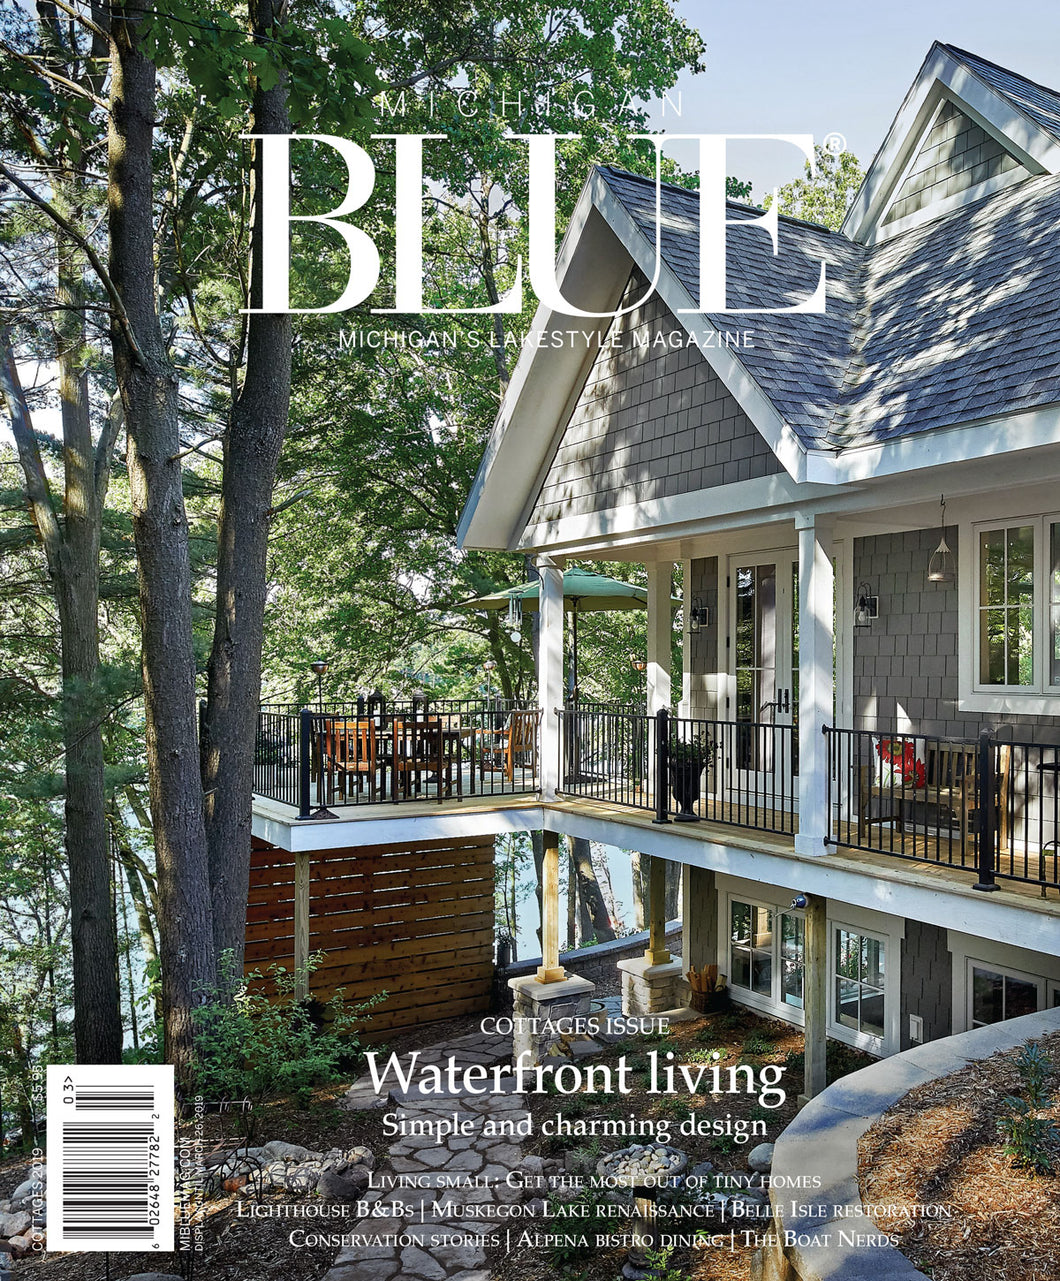 Michigan BLUE Magazine, Cottages 2019 issue